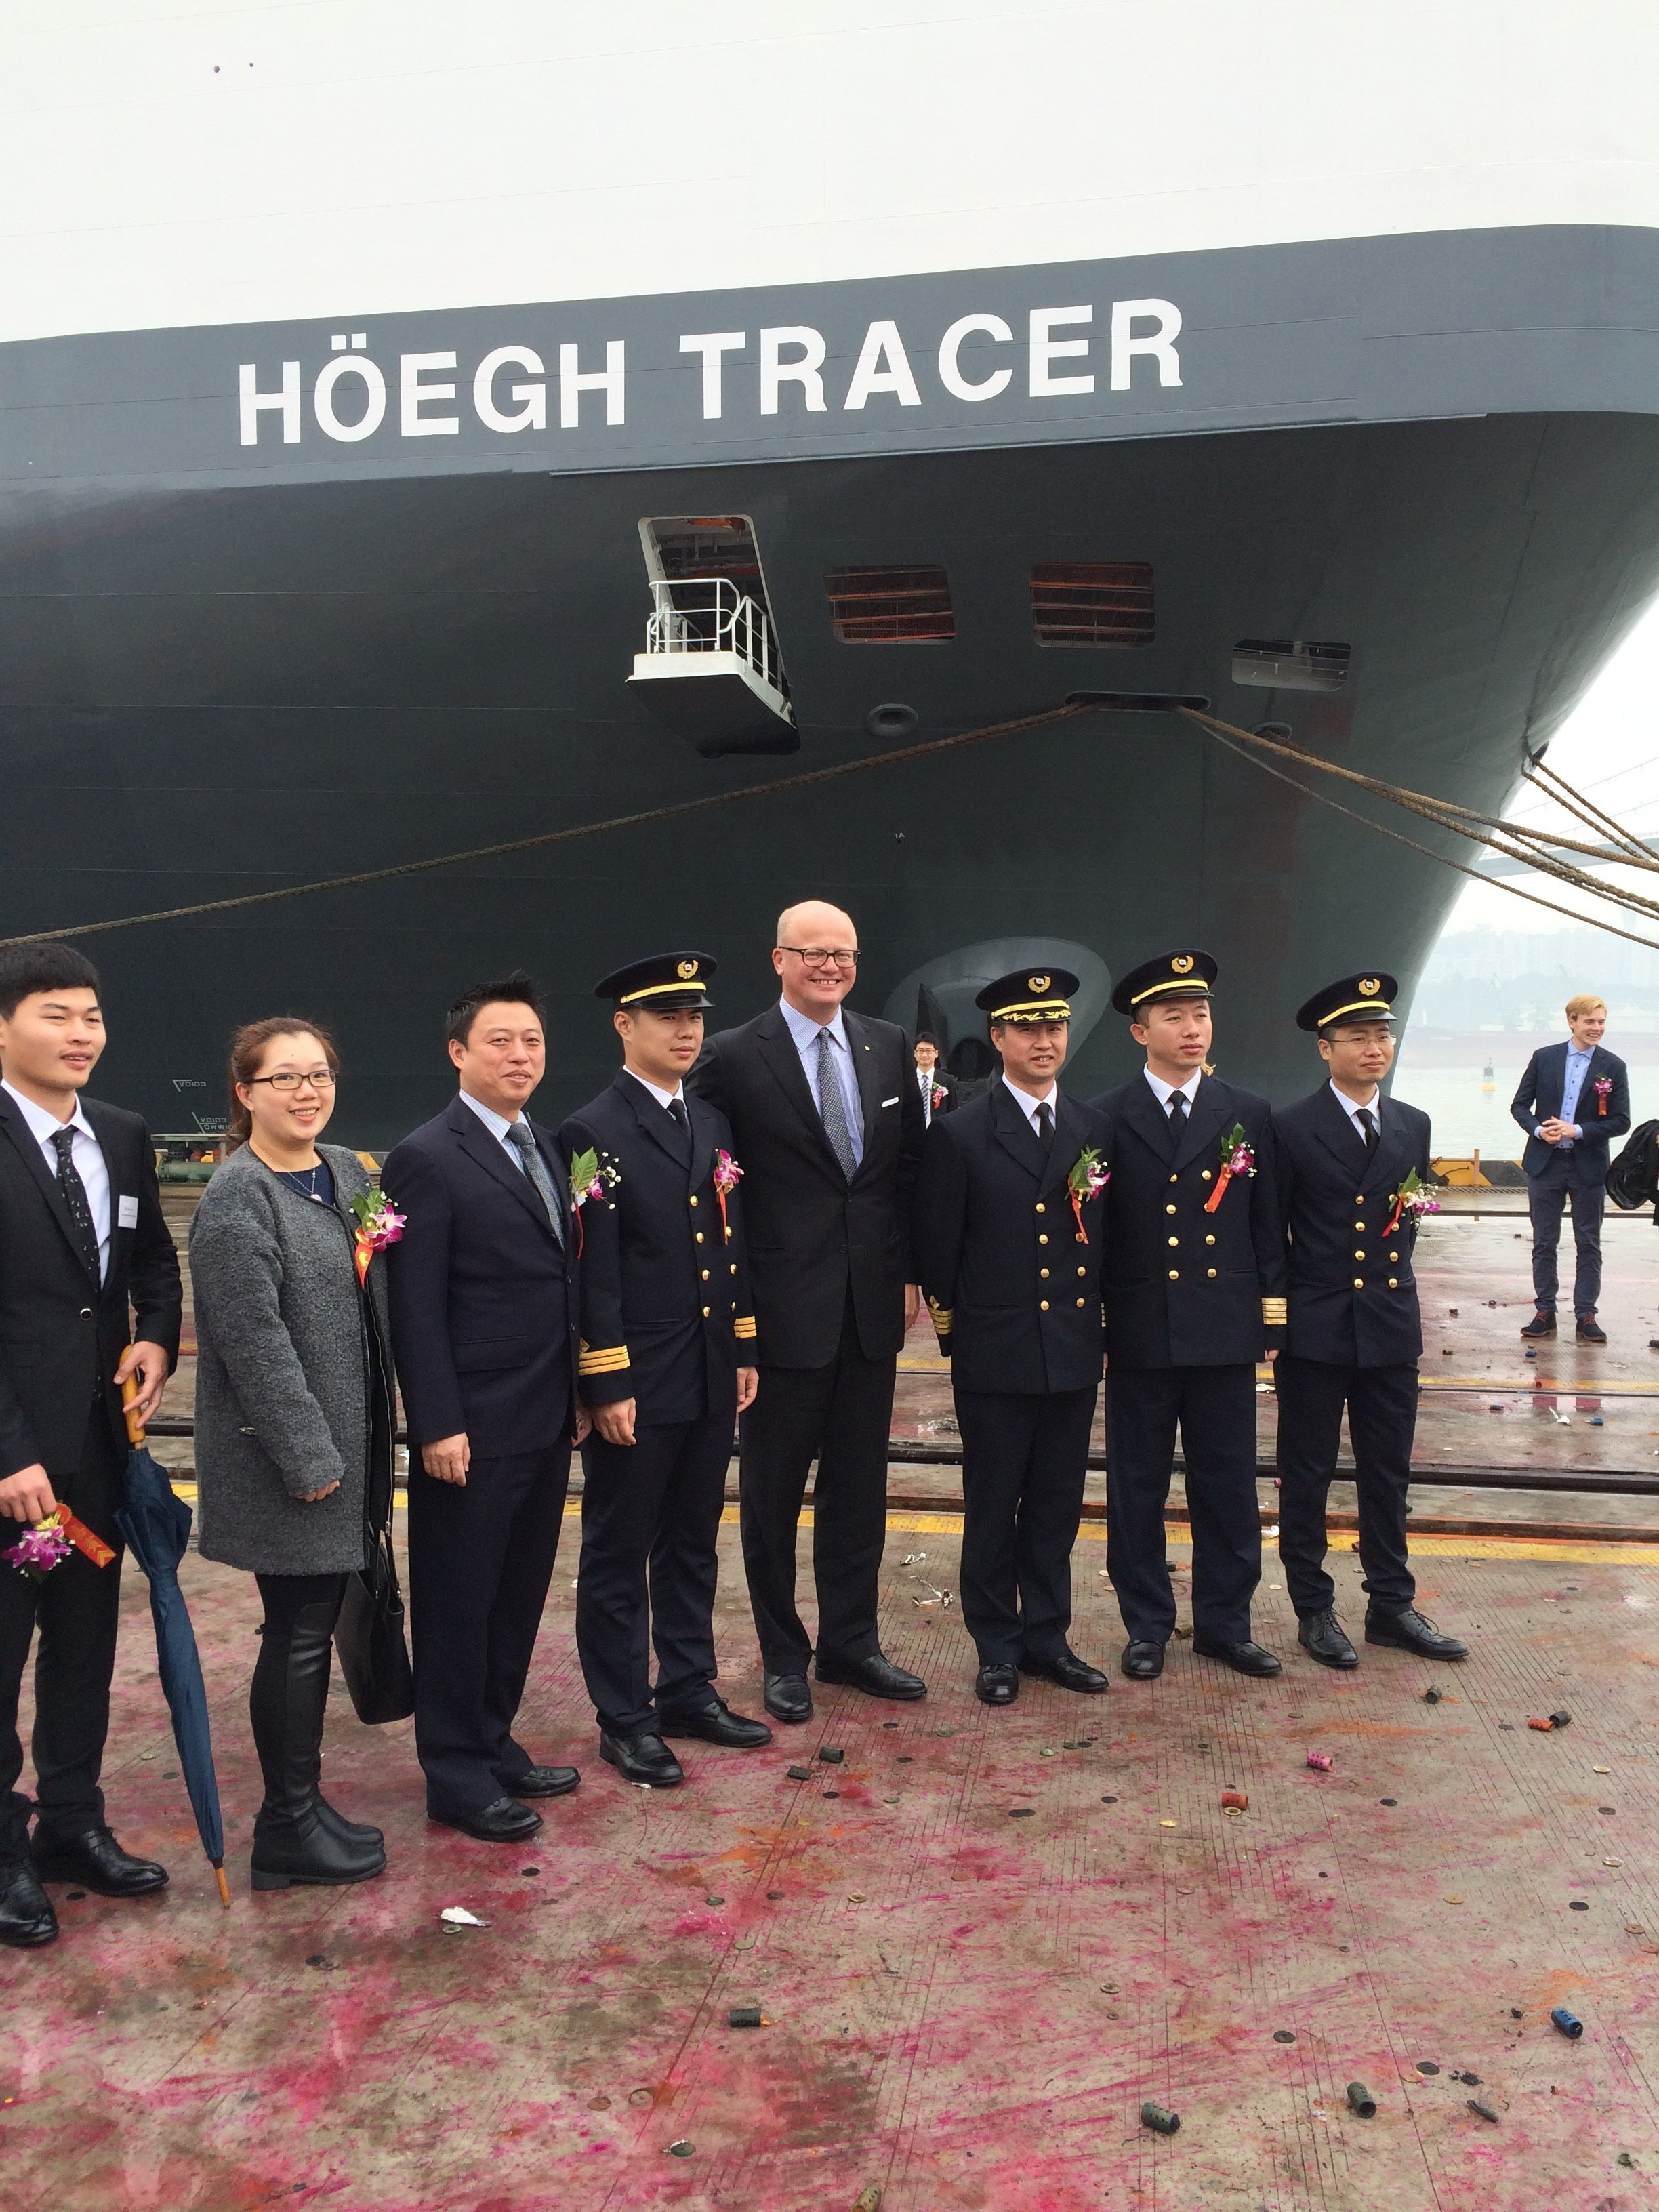 Leif Høegh attending the Naming of Höegh Tracer in China